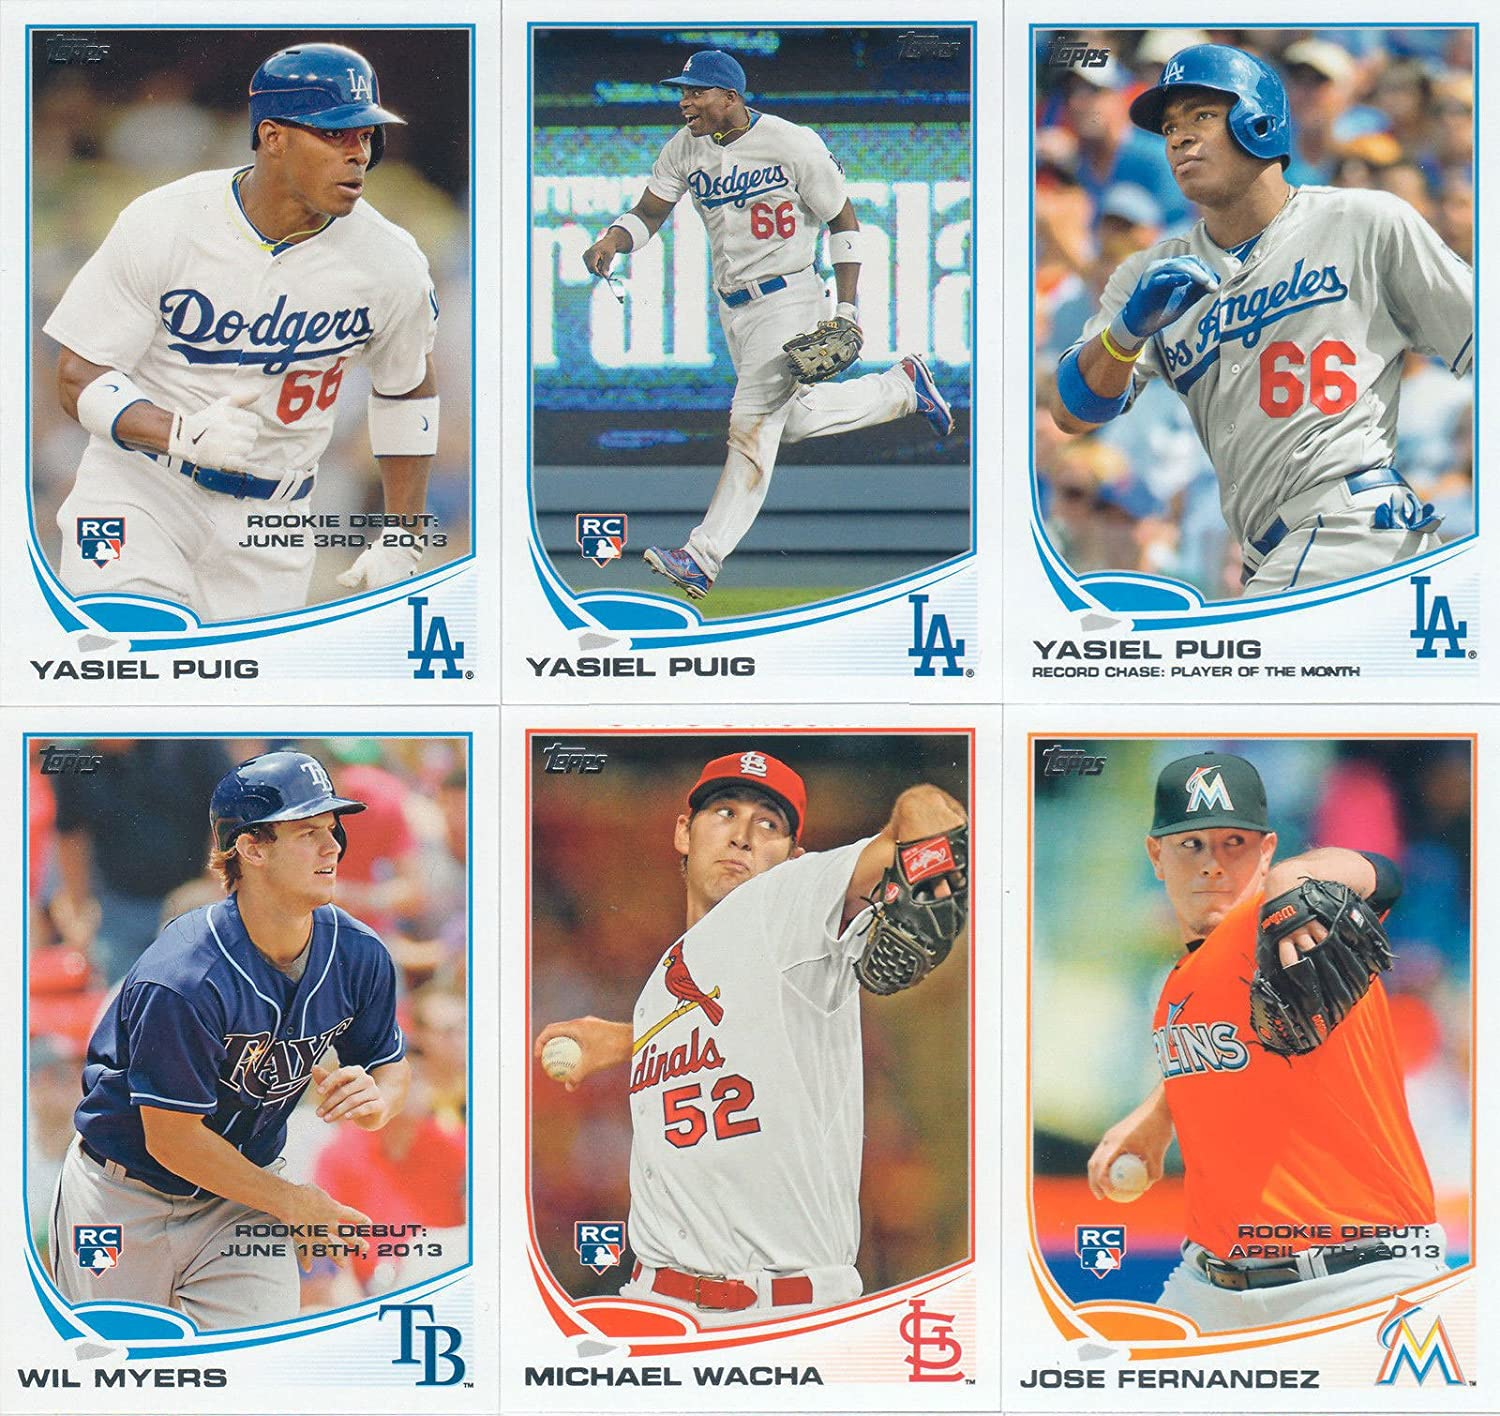 2013 Topps Traded MLB Baseball Updates and Highlights Series 330 Card Complete Mint Set Loaded with Plus Rookie Cards including Christian Yelich and Gerrit Cole